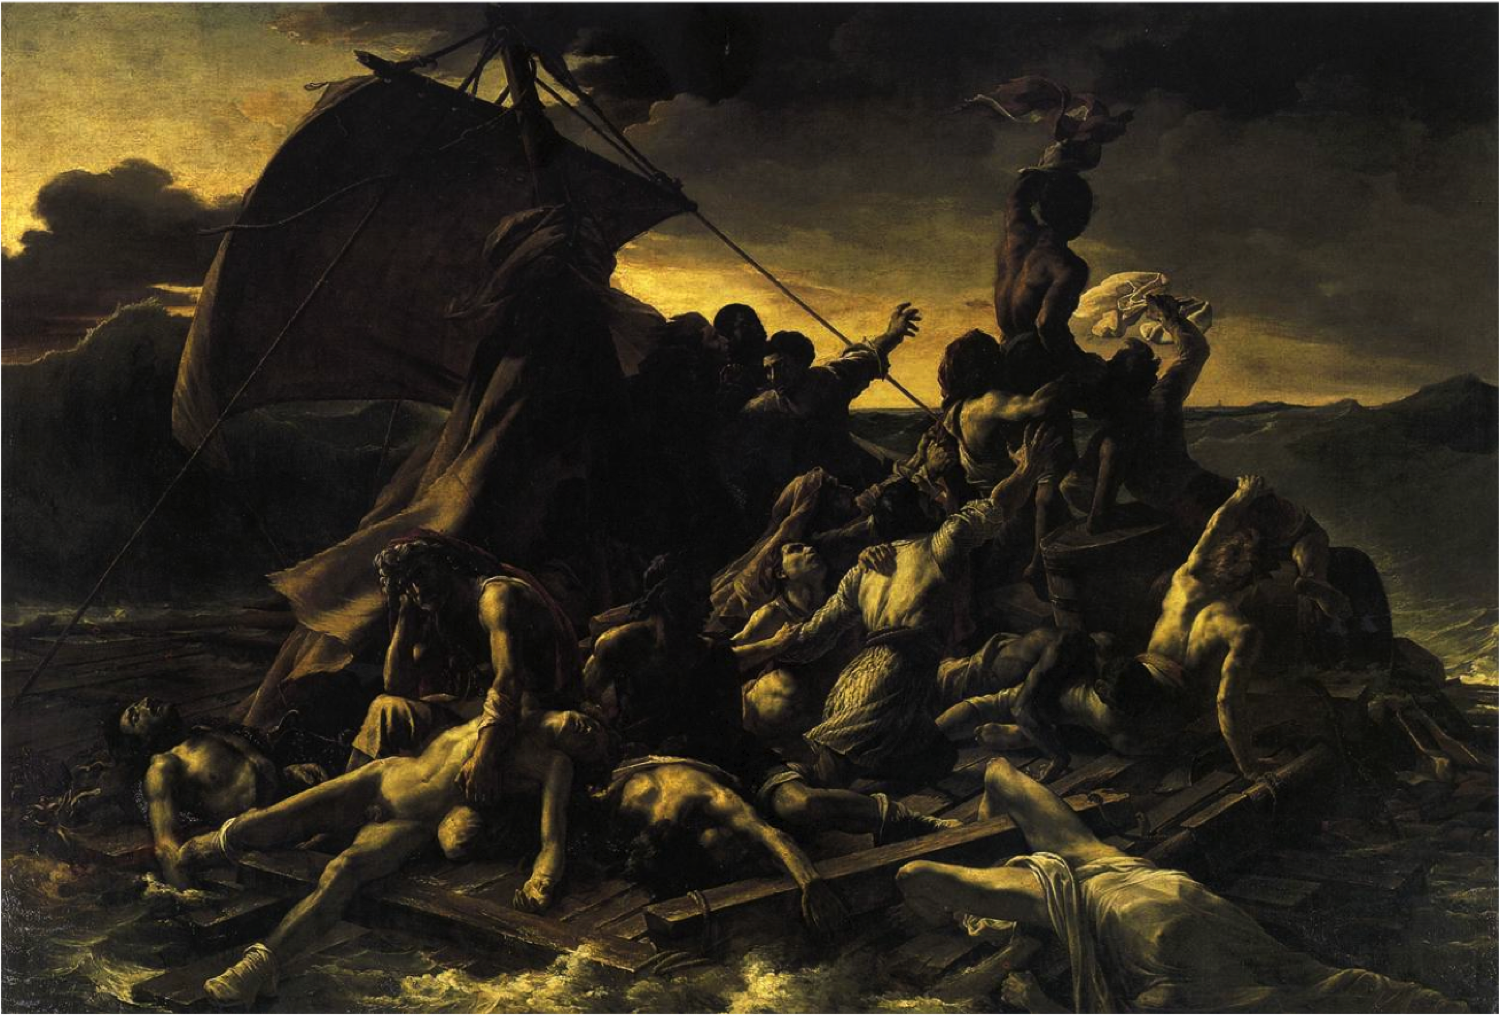 theodore géricault: the raft of the medusa, 1819, hanging in the louvre